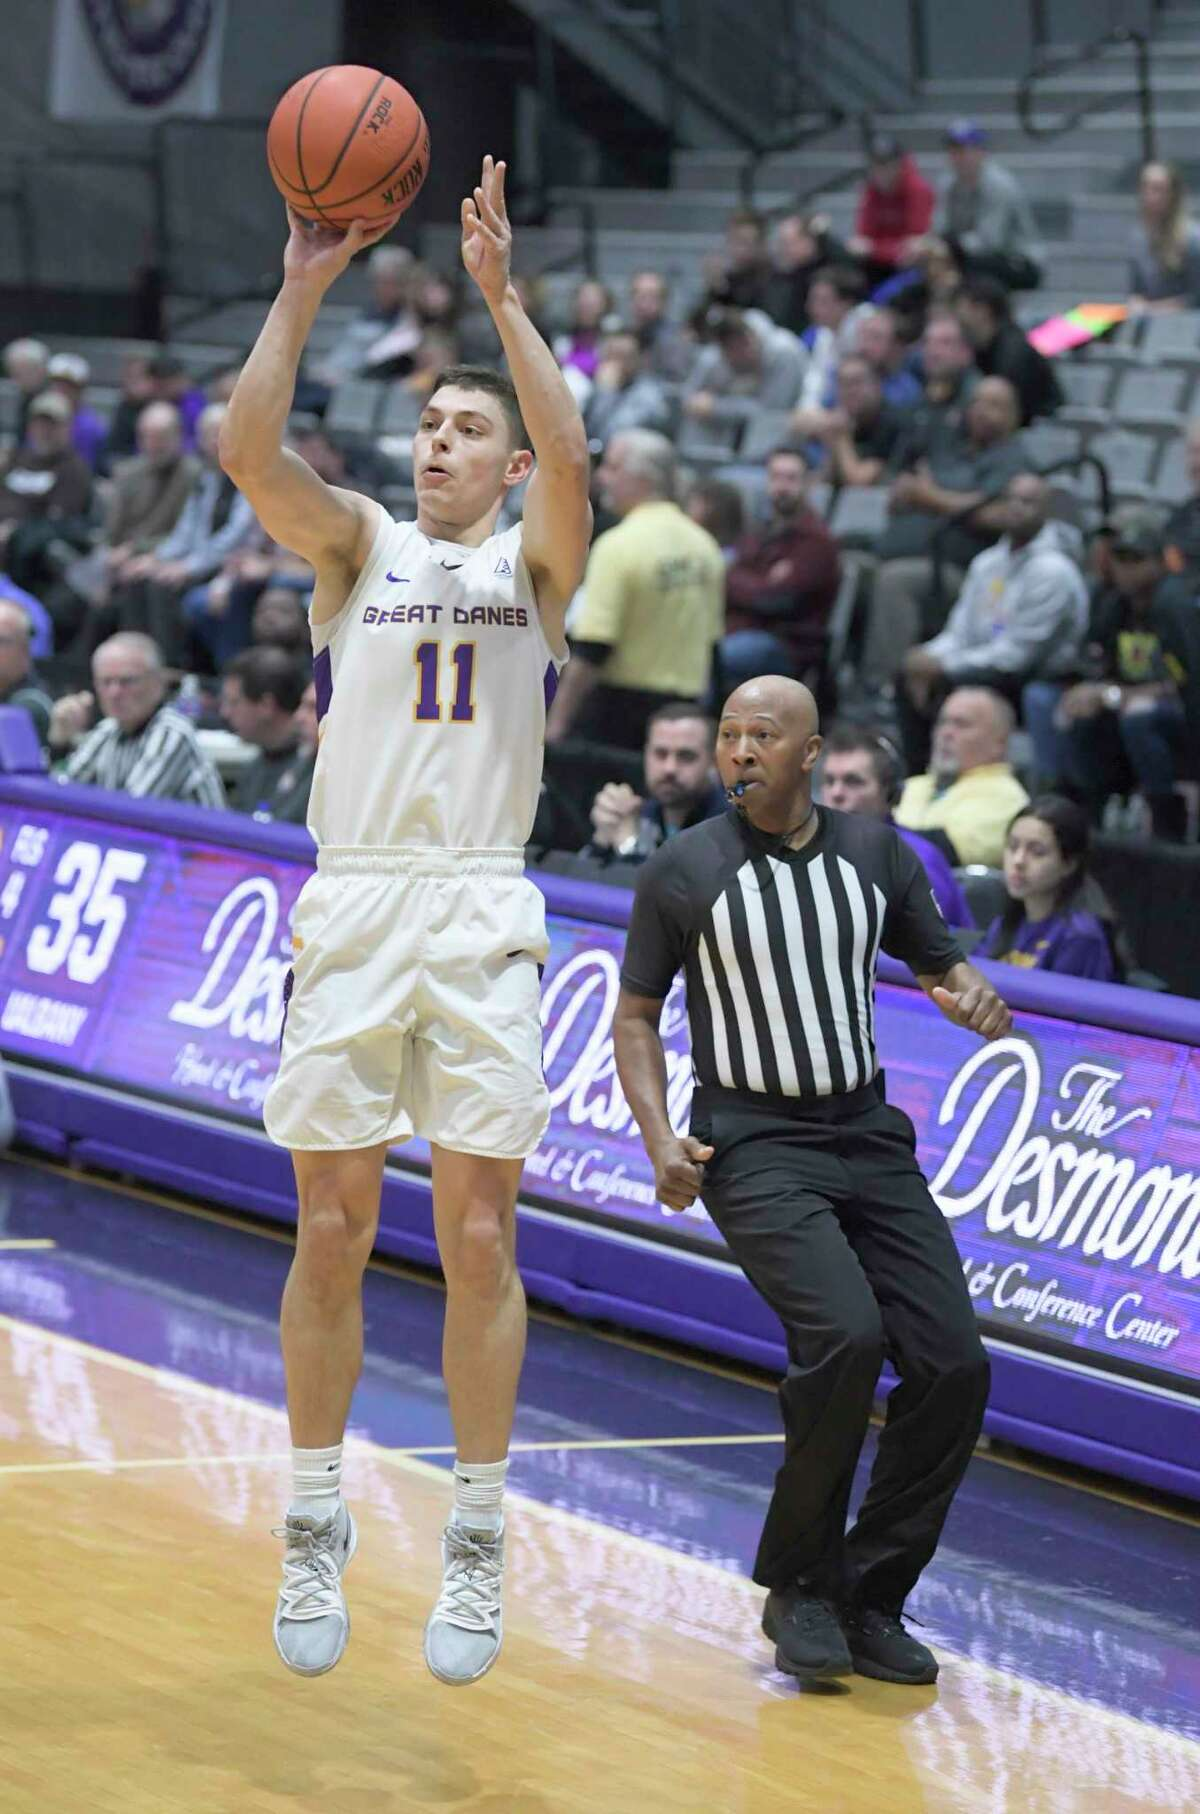 University at Albany guard Cameron Healy (11) scores against Lehigh during the second half of their home opener NCAA basketball game Saturday, Nov. 9, 2019, in Albany, N.Y. Lehigh won 74-70. (Hans Pennink / Special to the Times Union)